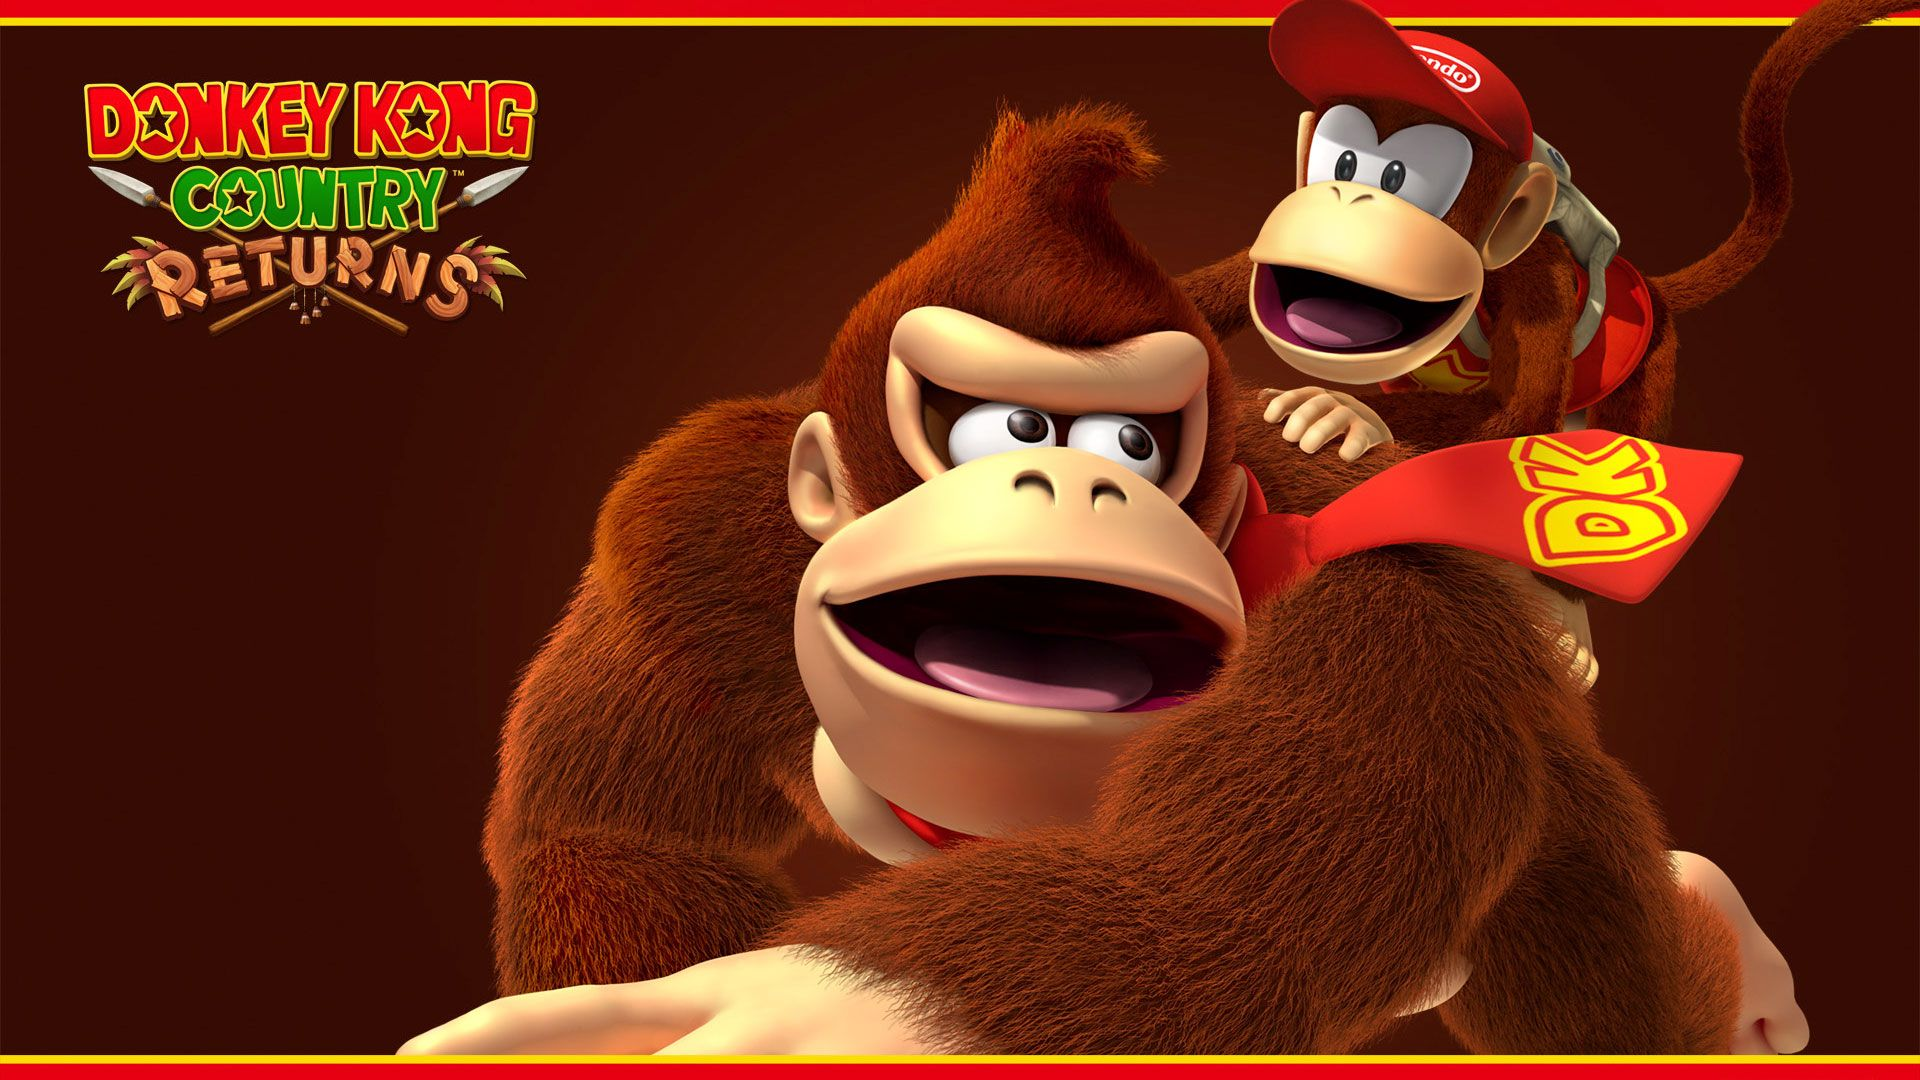 Donkey Kong Country Returns Wallpapers In Hd Donkey Kong Country Donkey Kong Donkey Kong Country Returns